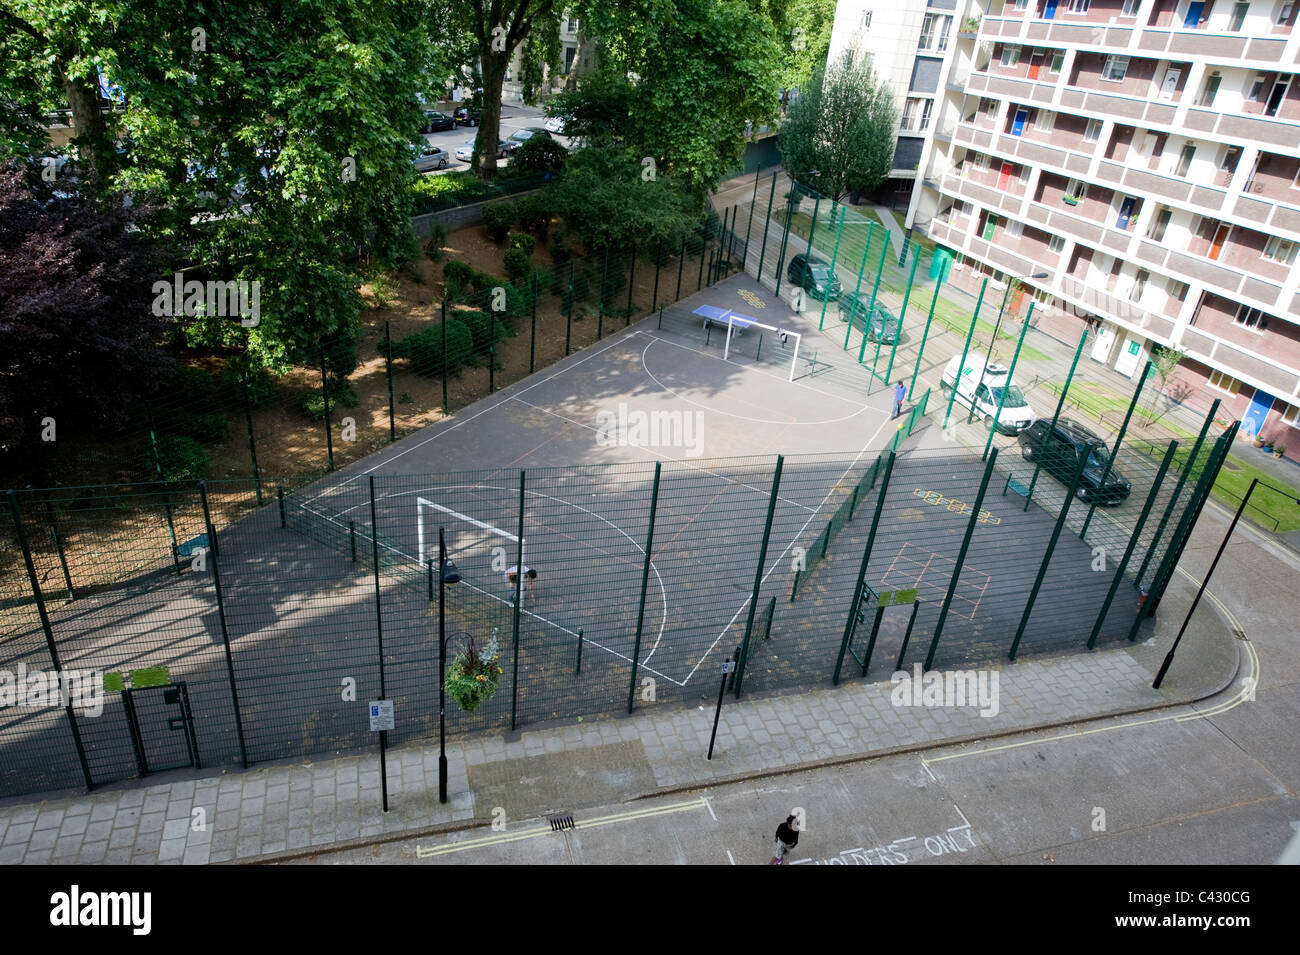 A communal play area in Hallfield Estate in London suburb of Bayswater, taken from an elevated position. - Stock Image